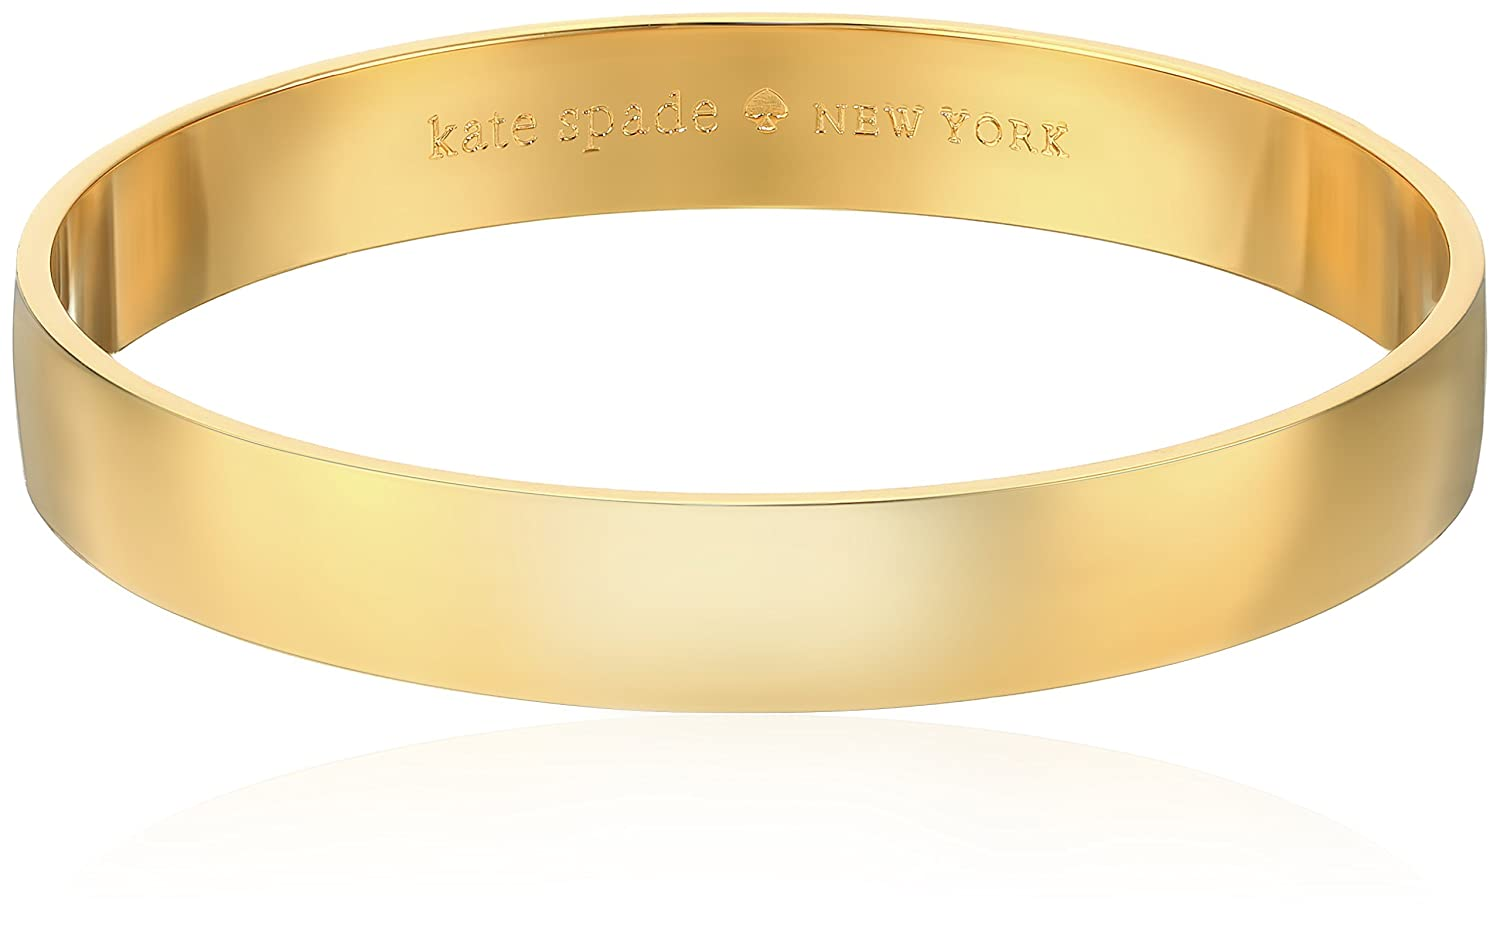 popular should on in yellow occasions an gold which a individual bangles bangle put hdhuzlq bracelet